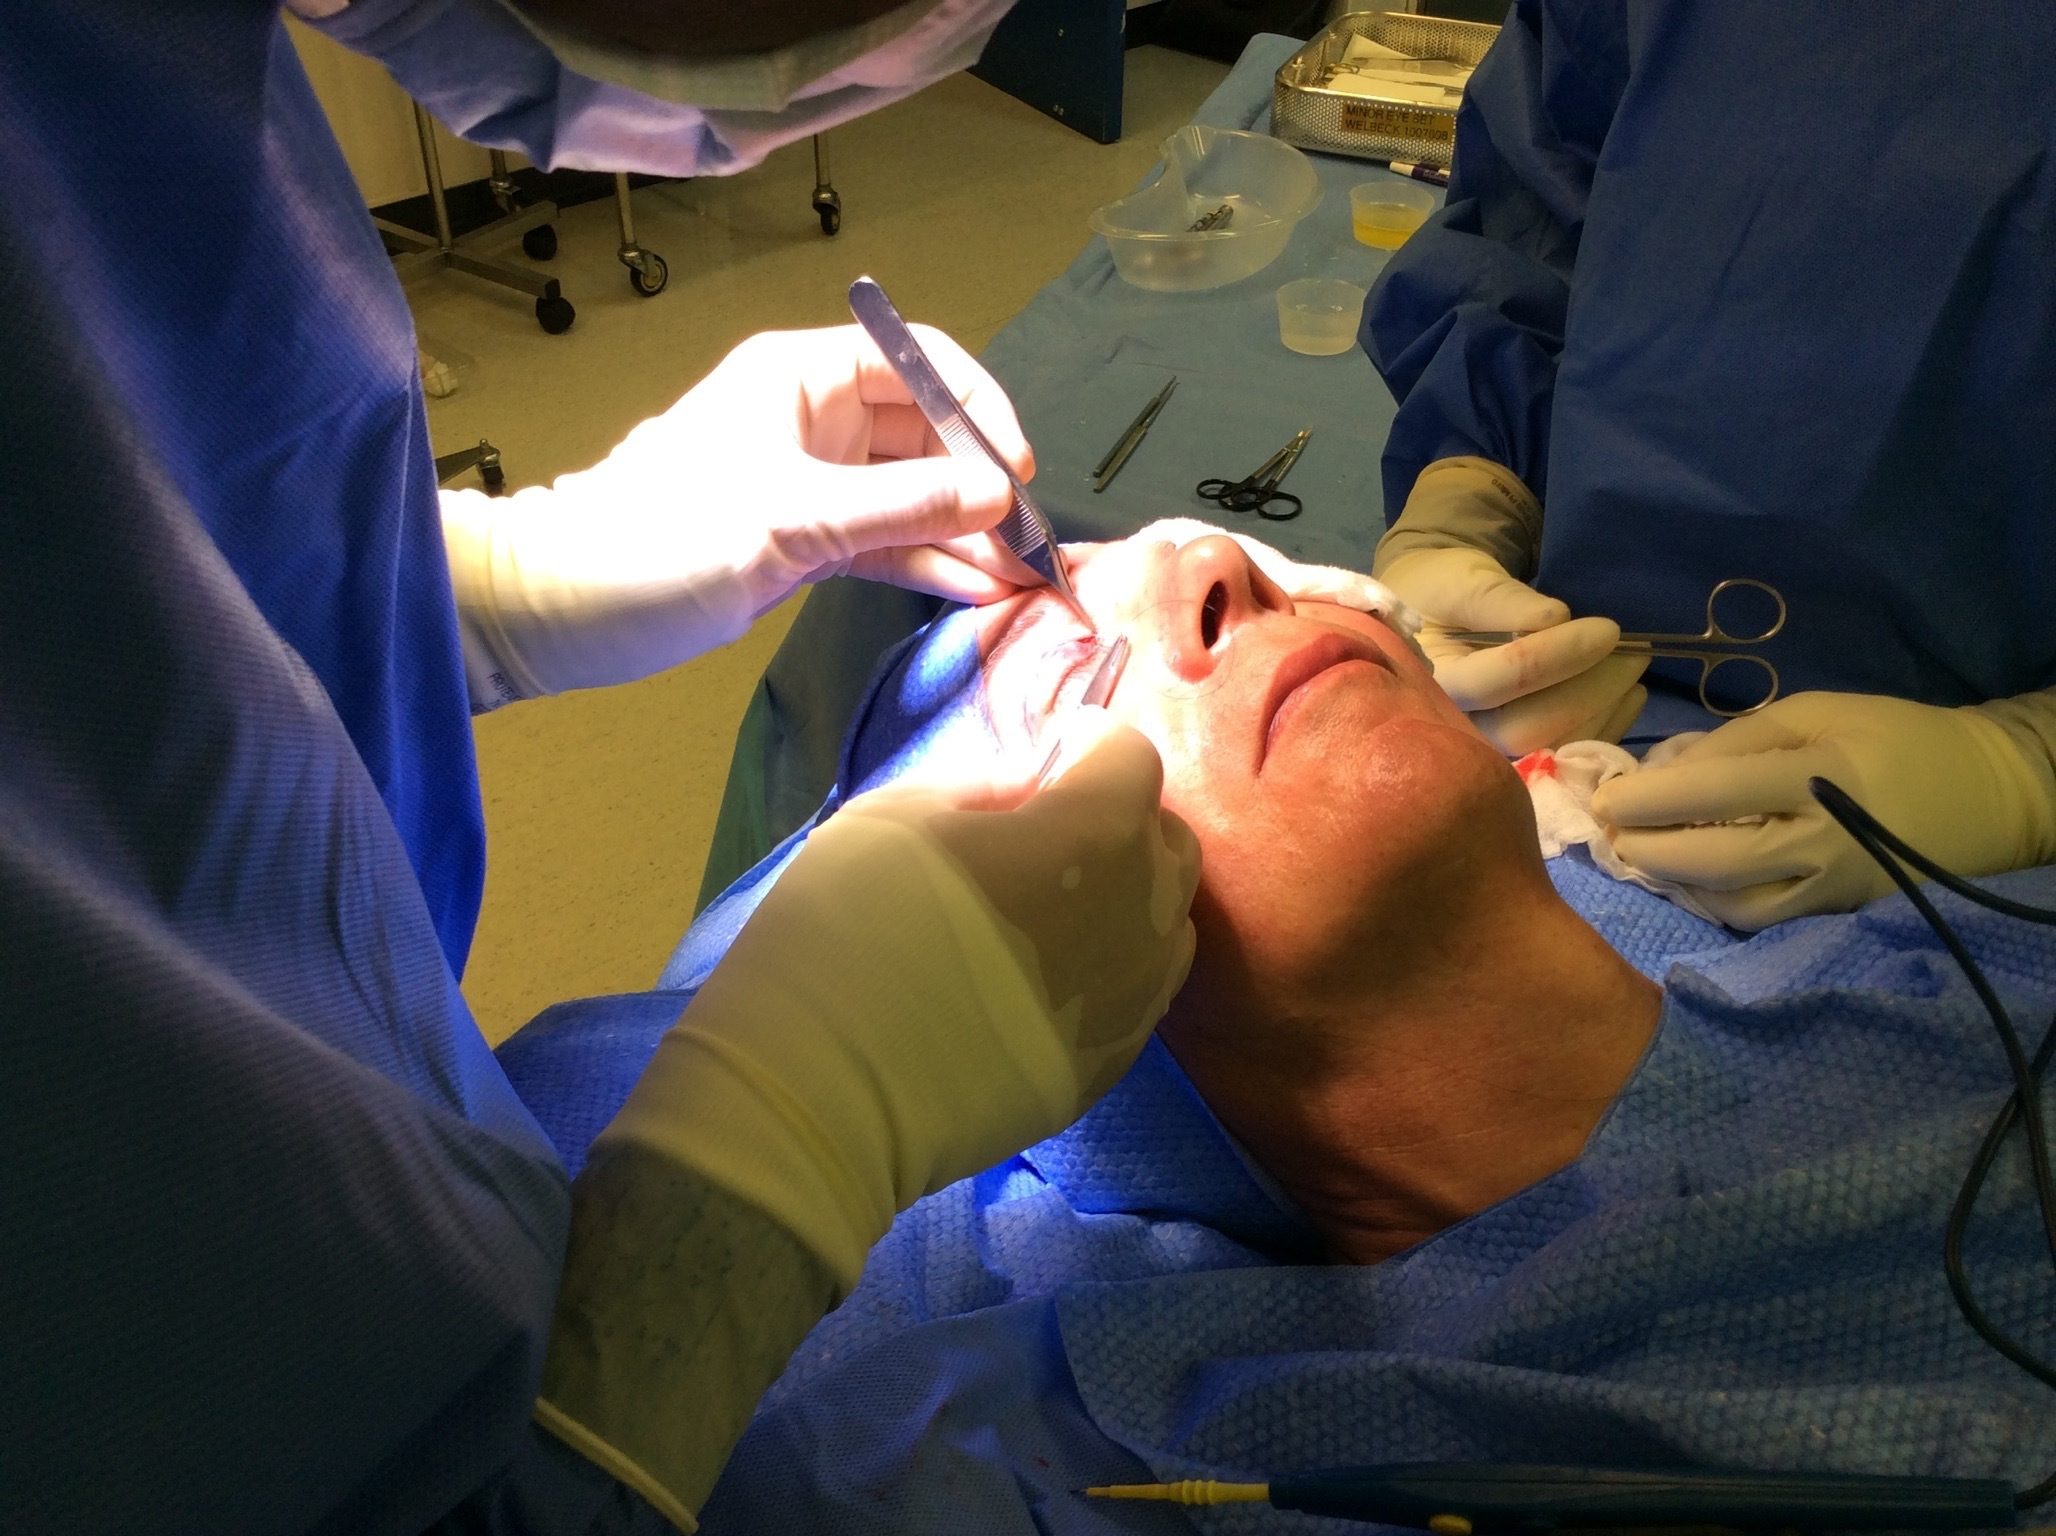 Patient before his Upper Blepharoplasty with Dr Fallahdar.